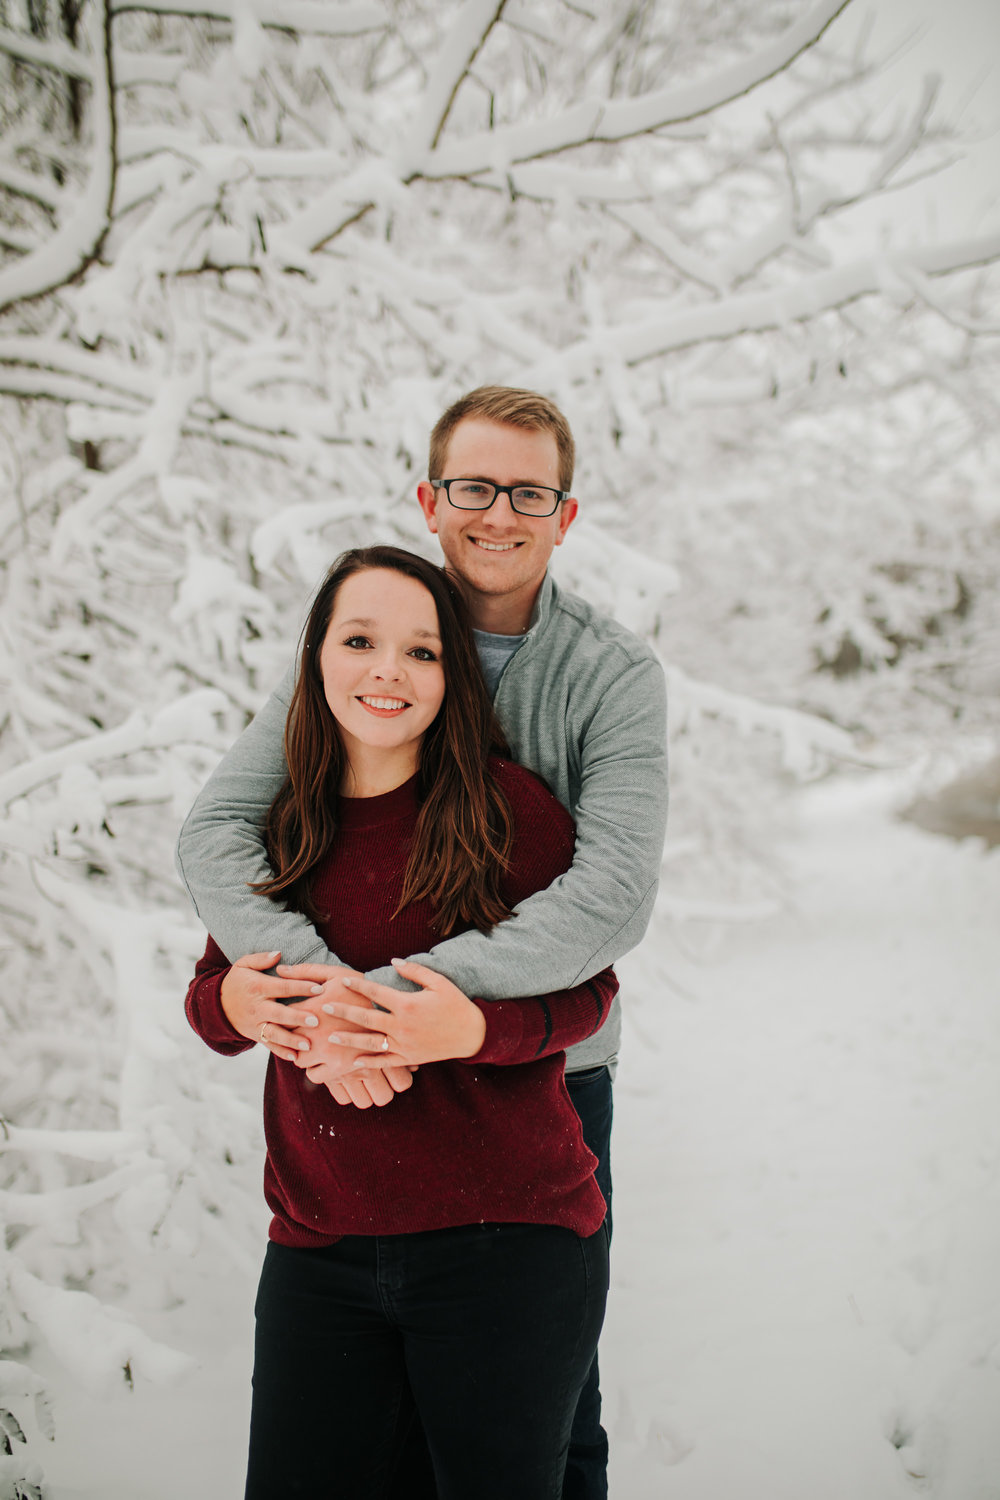 Vanessa & Dan - Engaged - Nathaniel Jensen Photography - Omaha Nebraska Wedding Photographer - Standing Bear Lake - Snowy Engagement Session-66.jpg